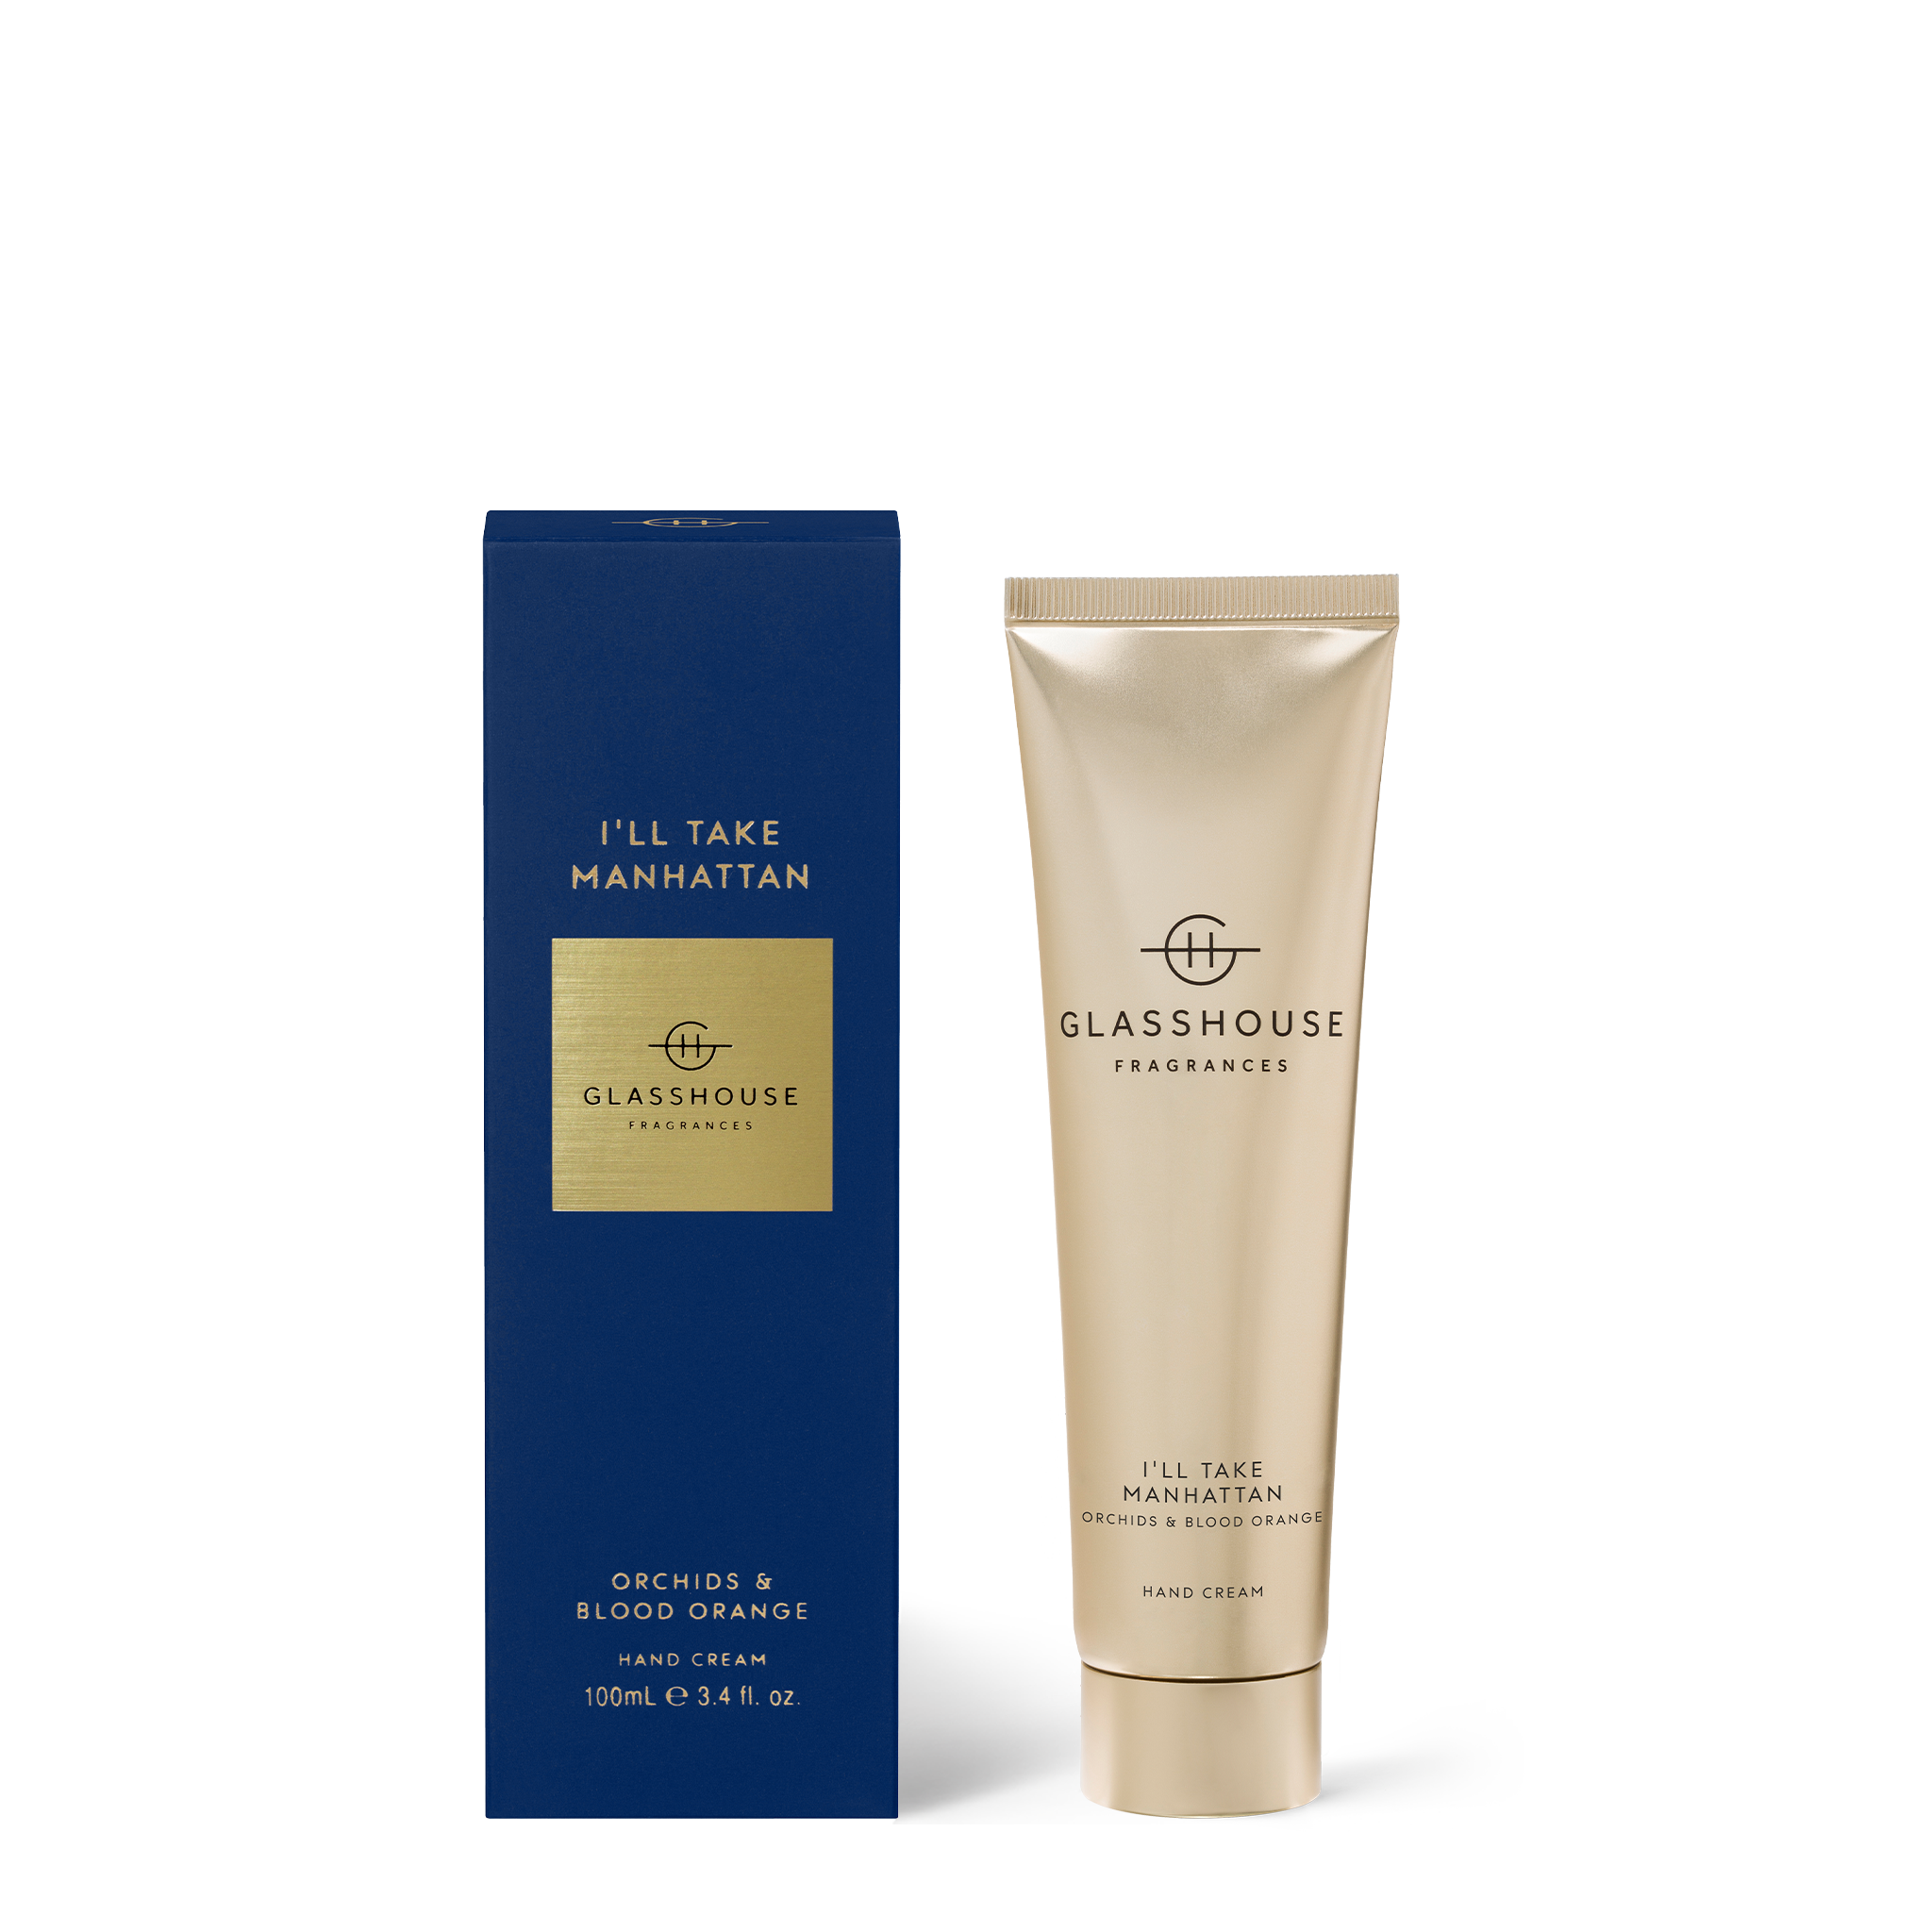 GLASSHOUSE FRAGRANCES I'll Take Manhattan Hand Cream 100ml